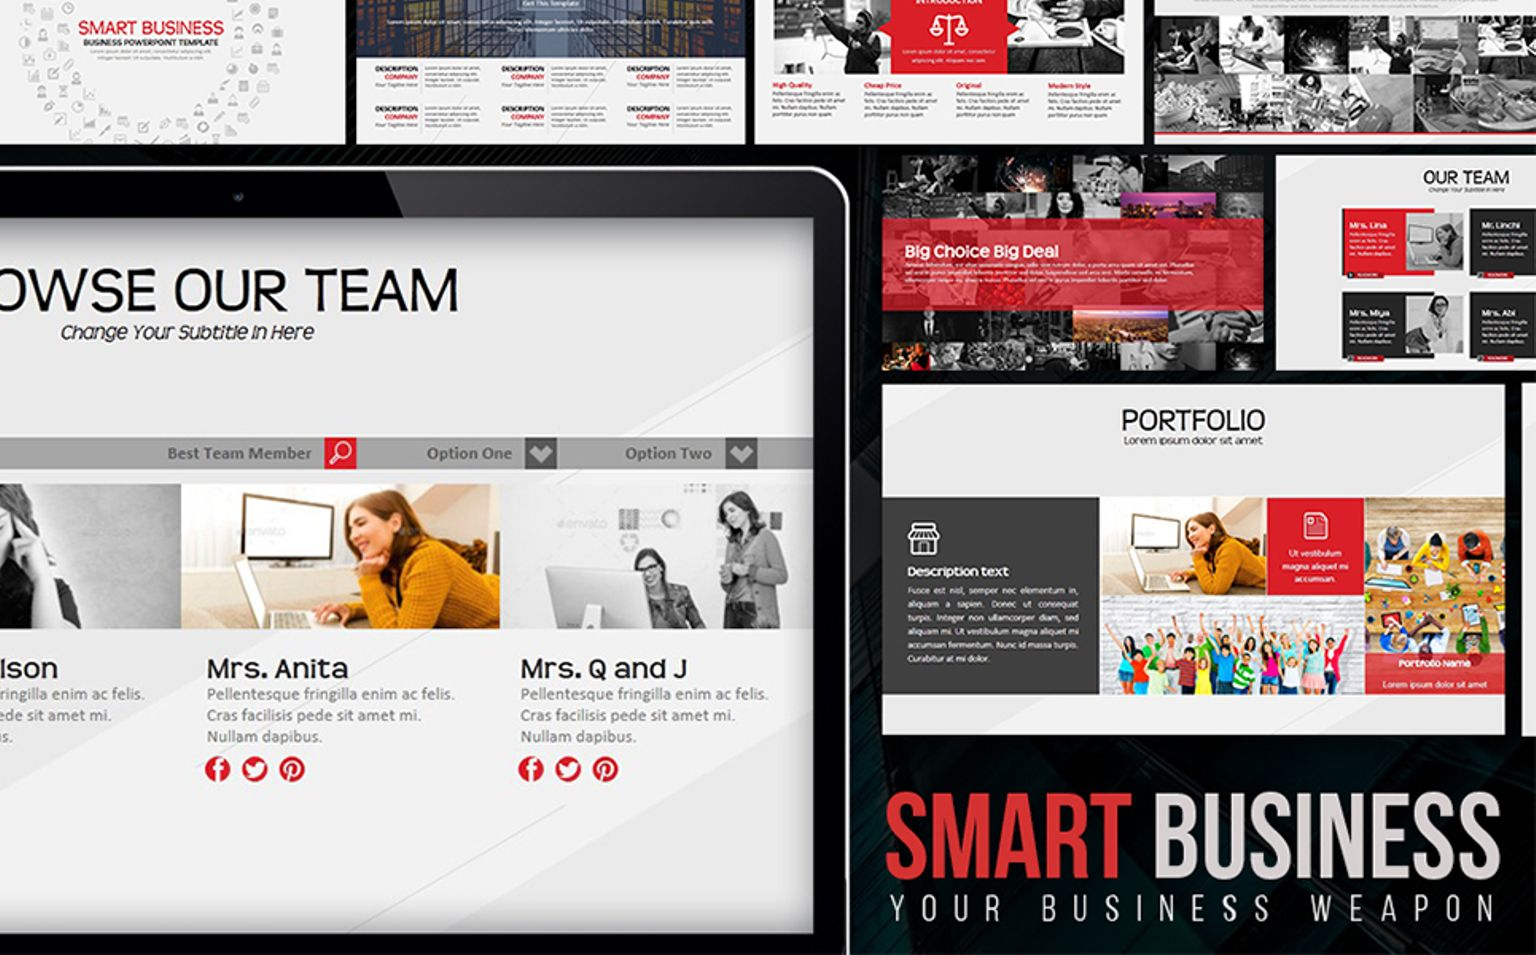 Smart business powerpoint template 65685 smart business powerpoint template big screenshot toneelgroepblik Images